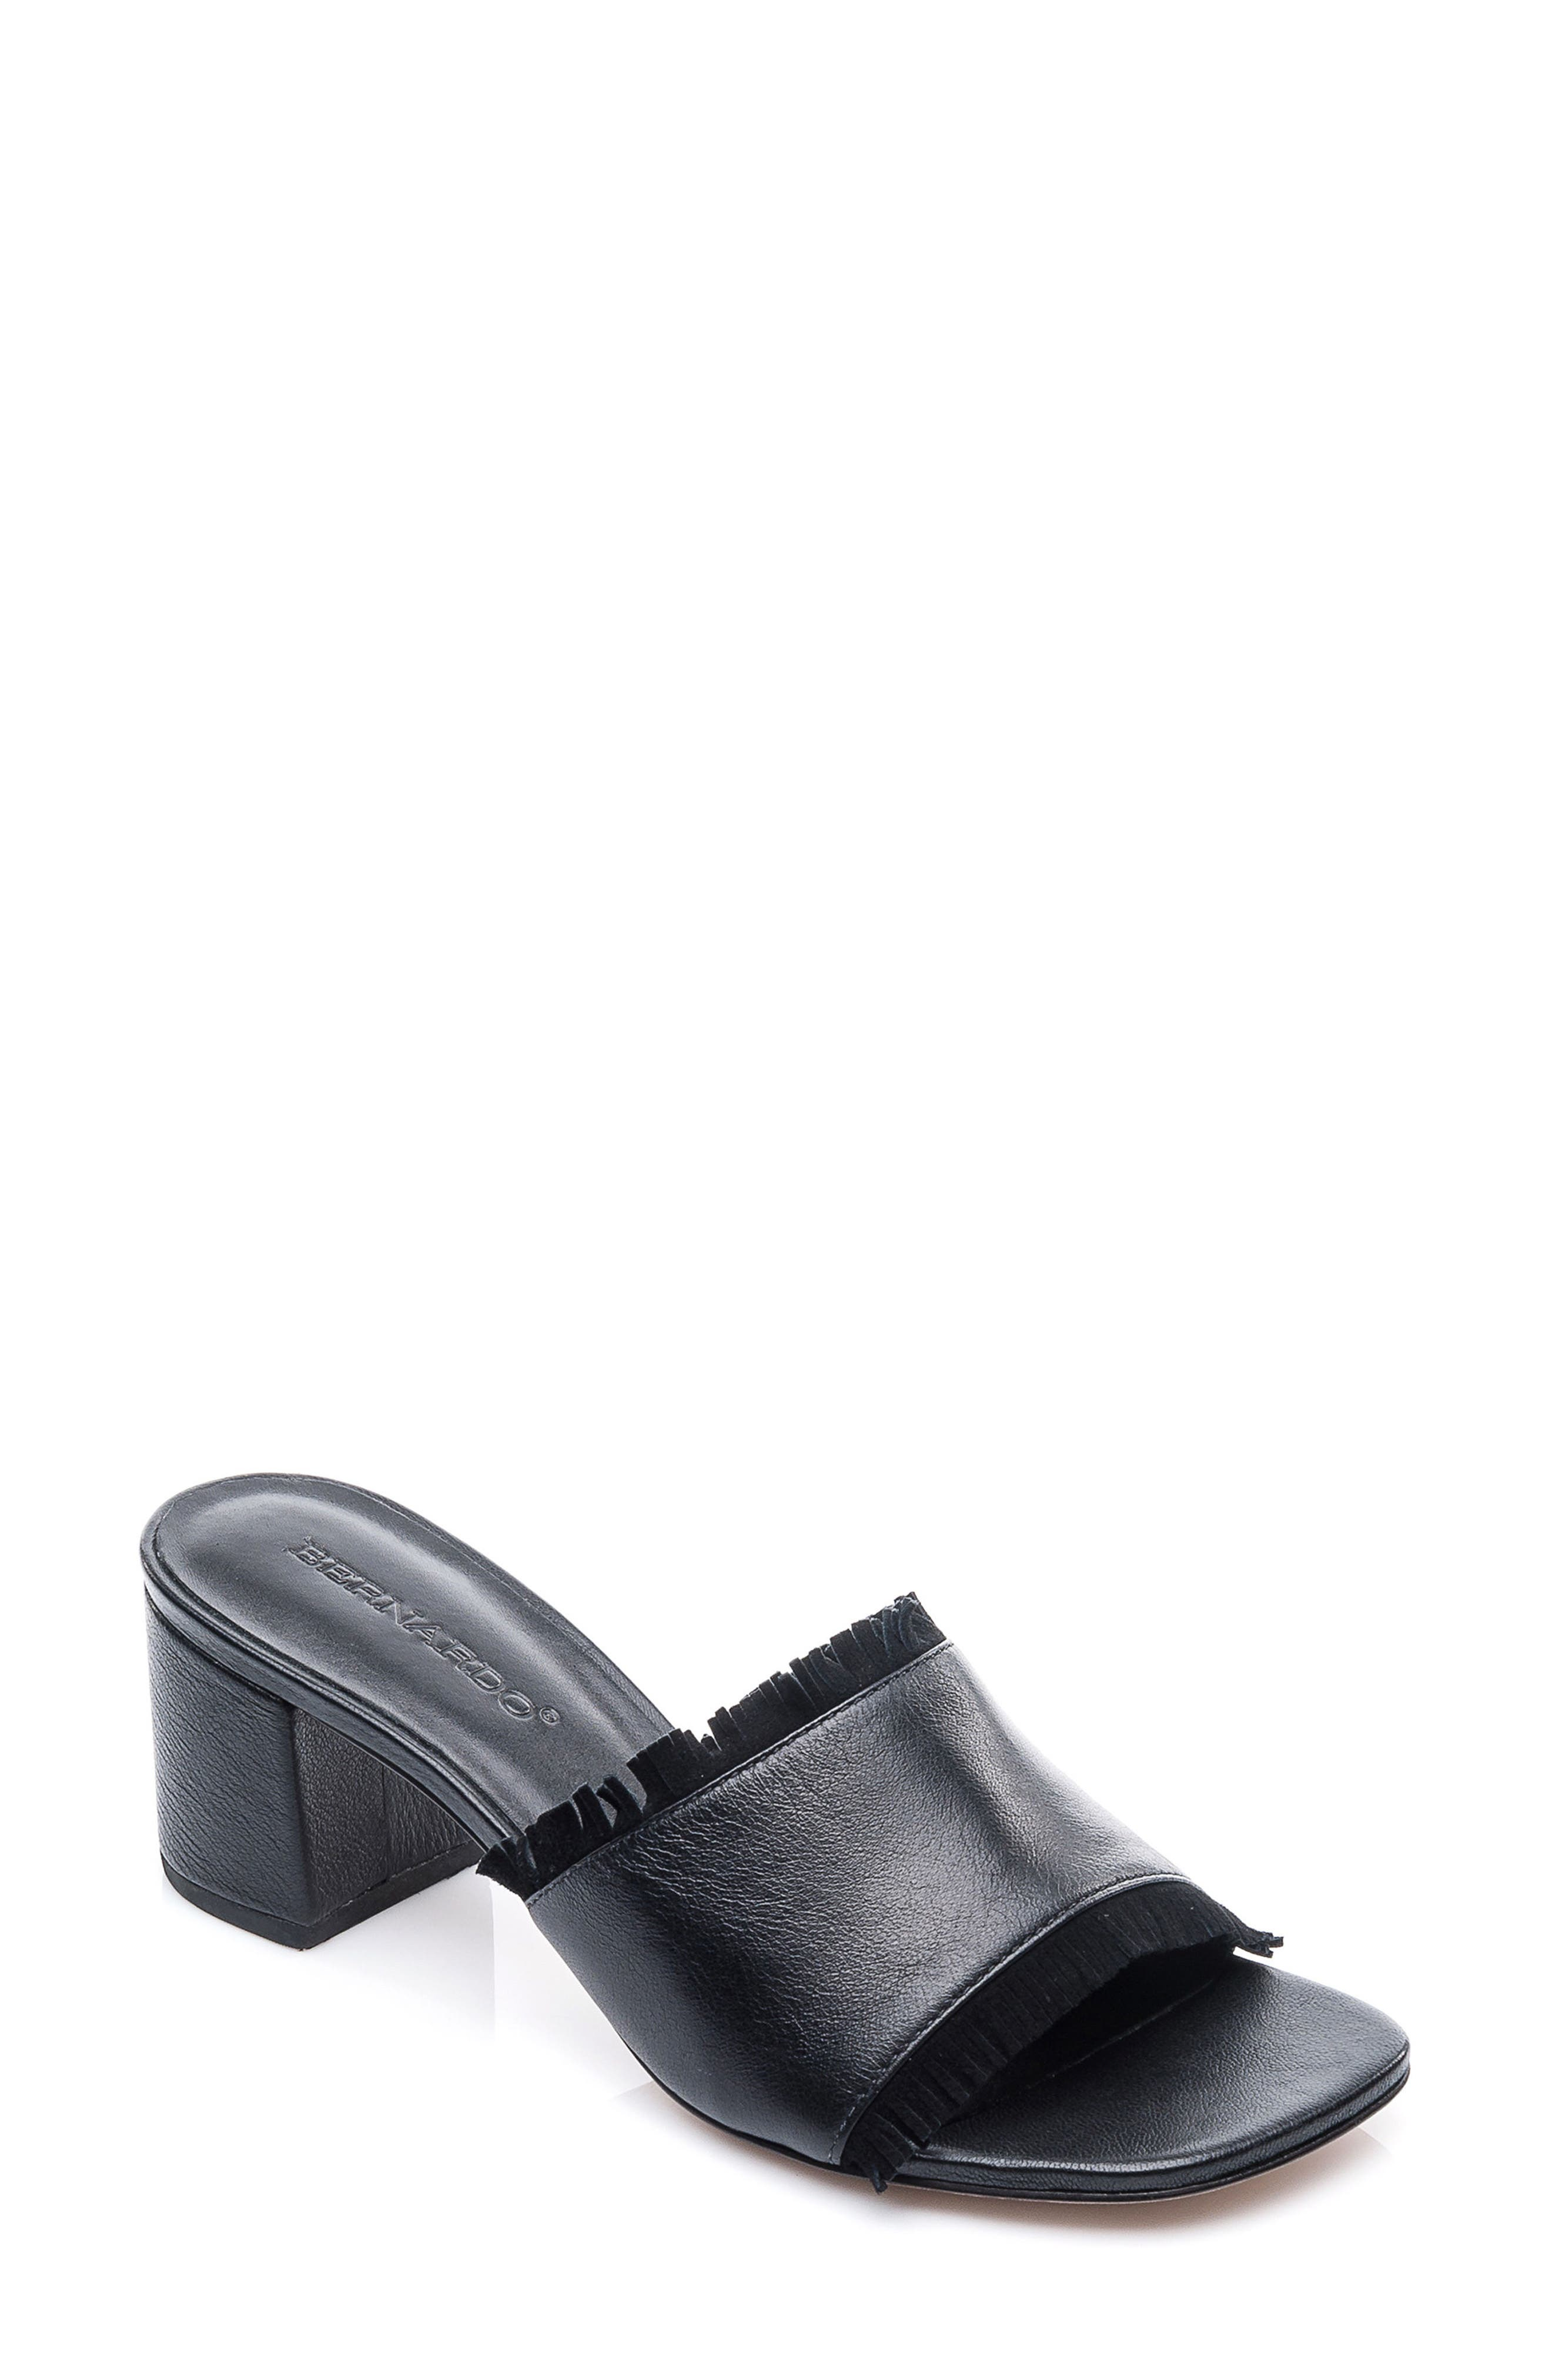 Bernardo Blossom Slide Sandal,                             Main thumbnail 1, color,                             001